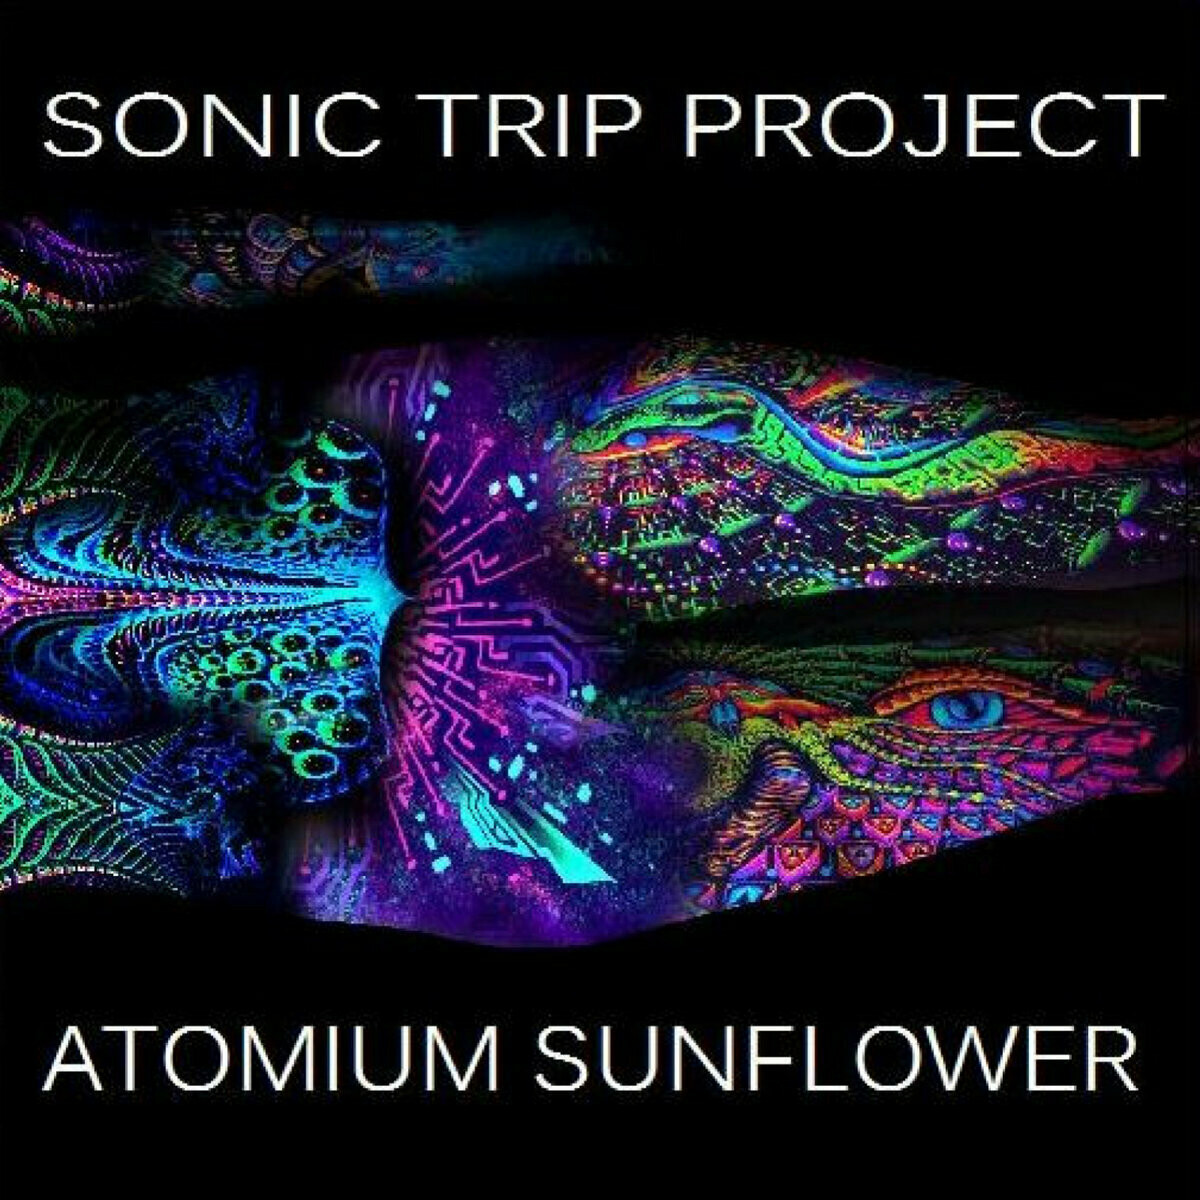 Sonic Trip Project - Atomium Sunflower (Blue/Mint) - 2LP - PreOrder​